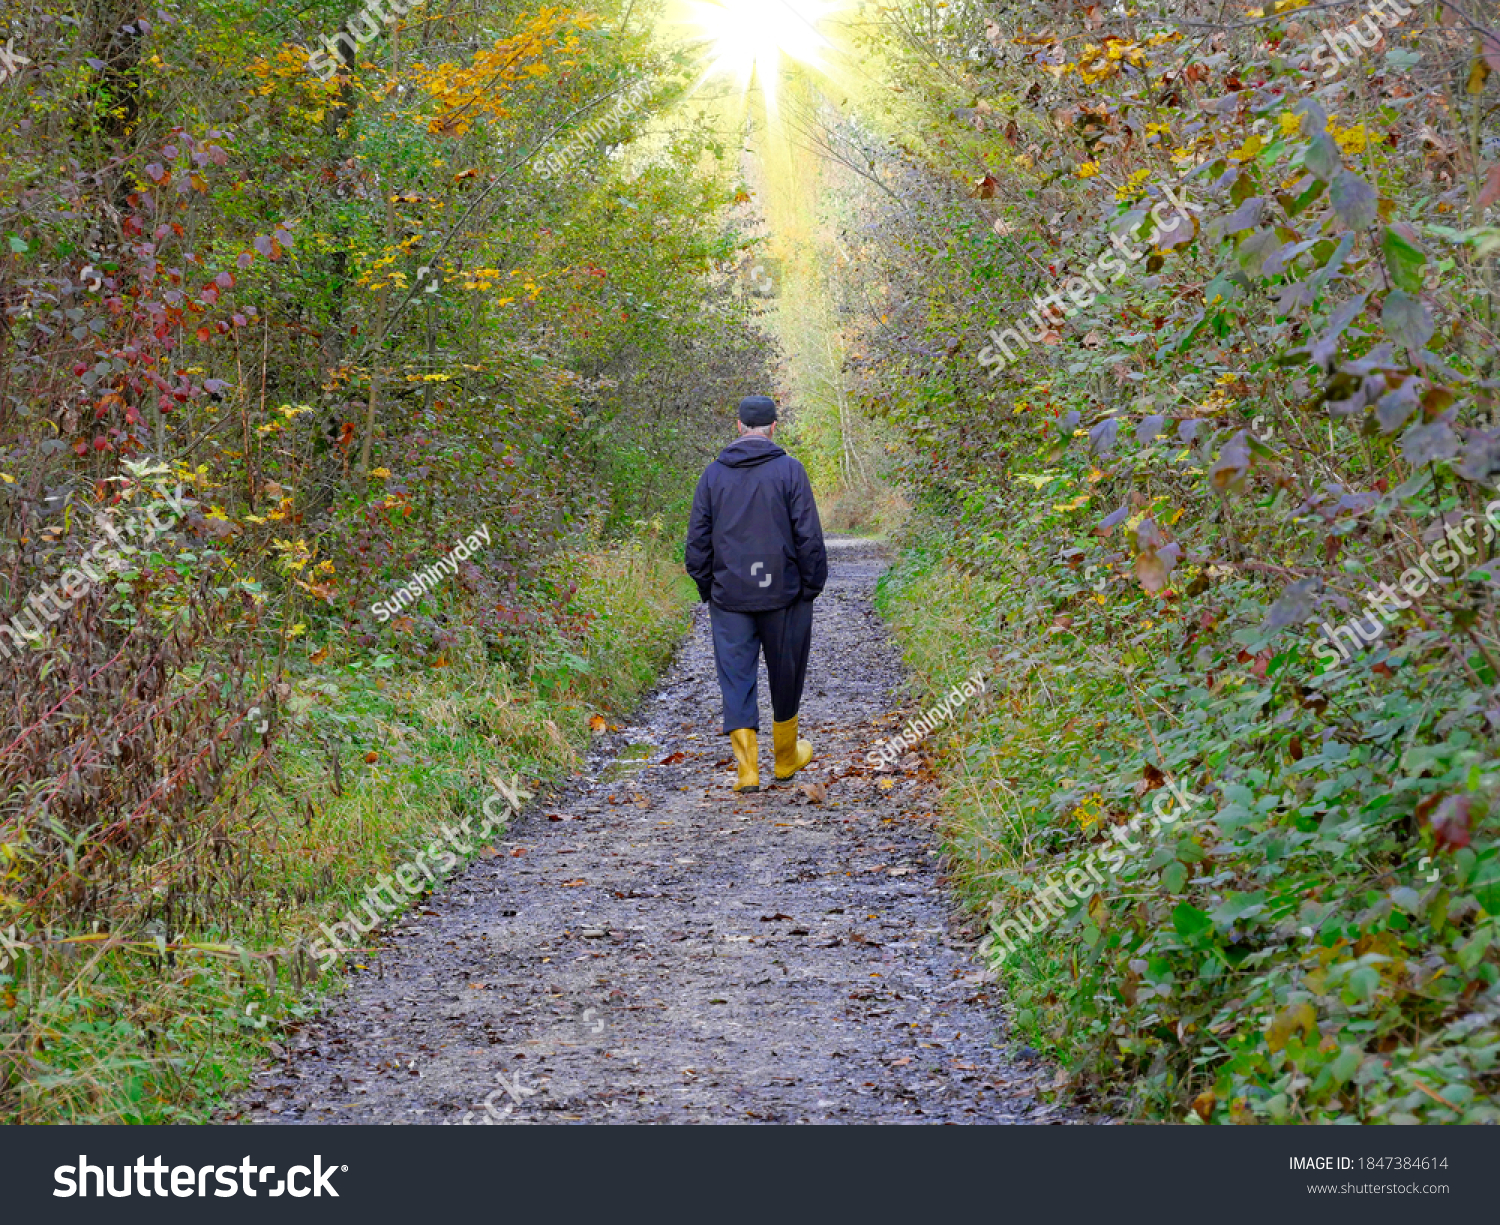 Man walks alone on a forest path towards a light